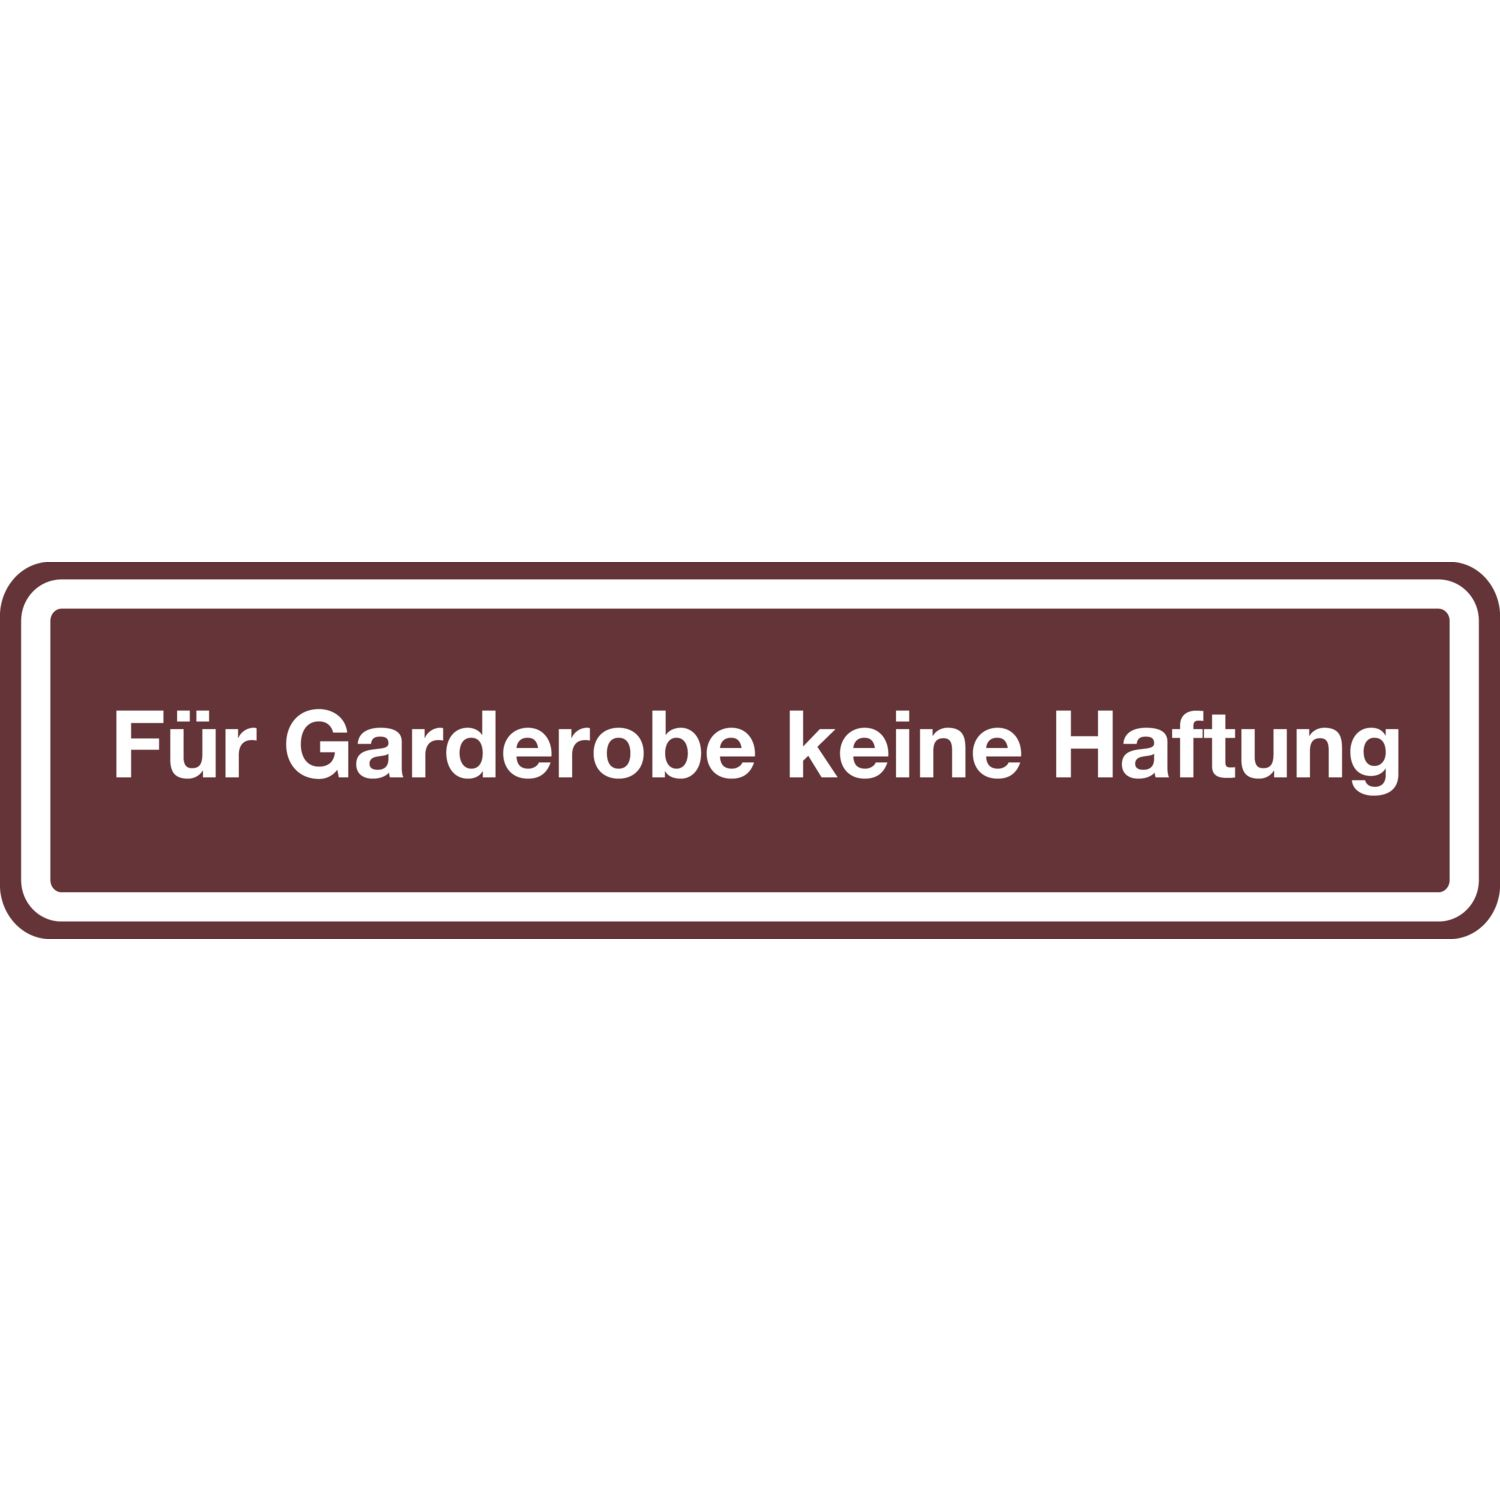 hinweisschild 200 x 48 mm f r garderobe keine haftung ral 8014. Black Bedroom Furniture Sets. Home Design Ideas